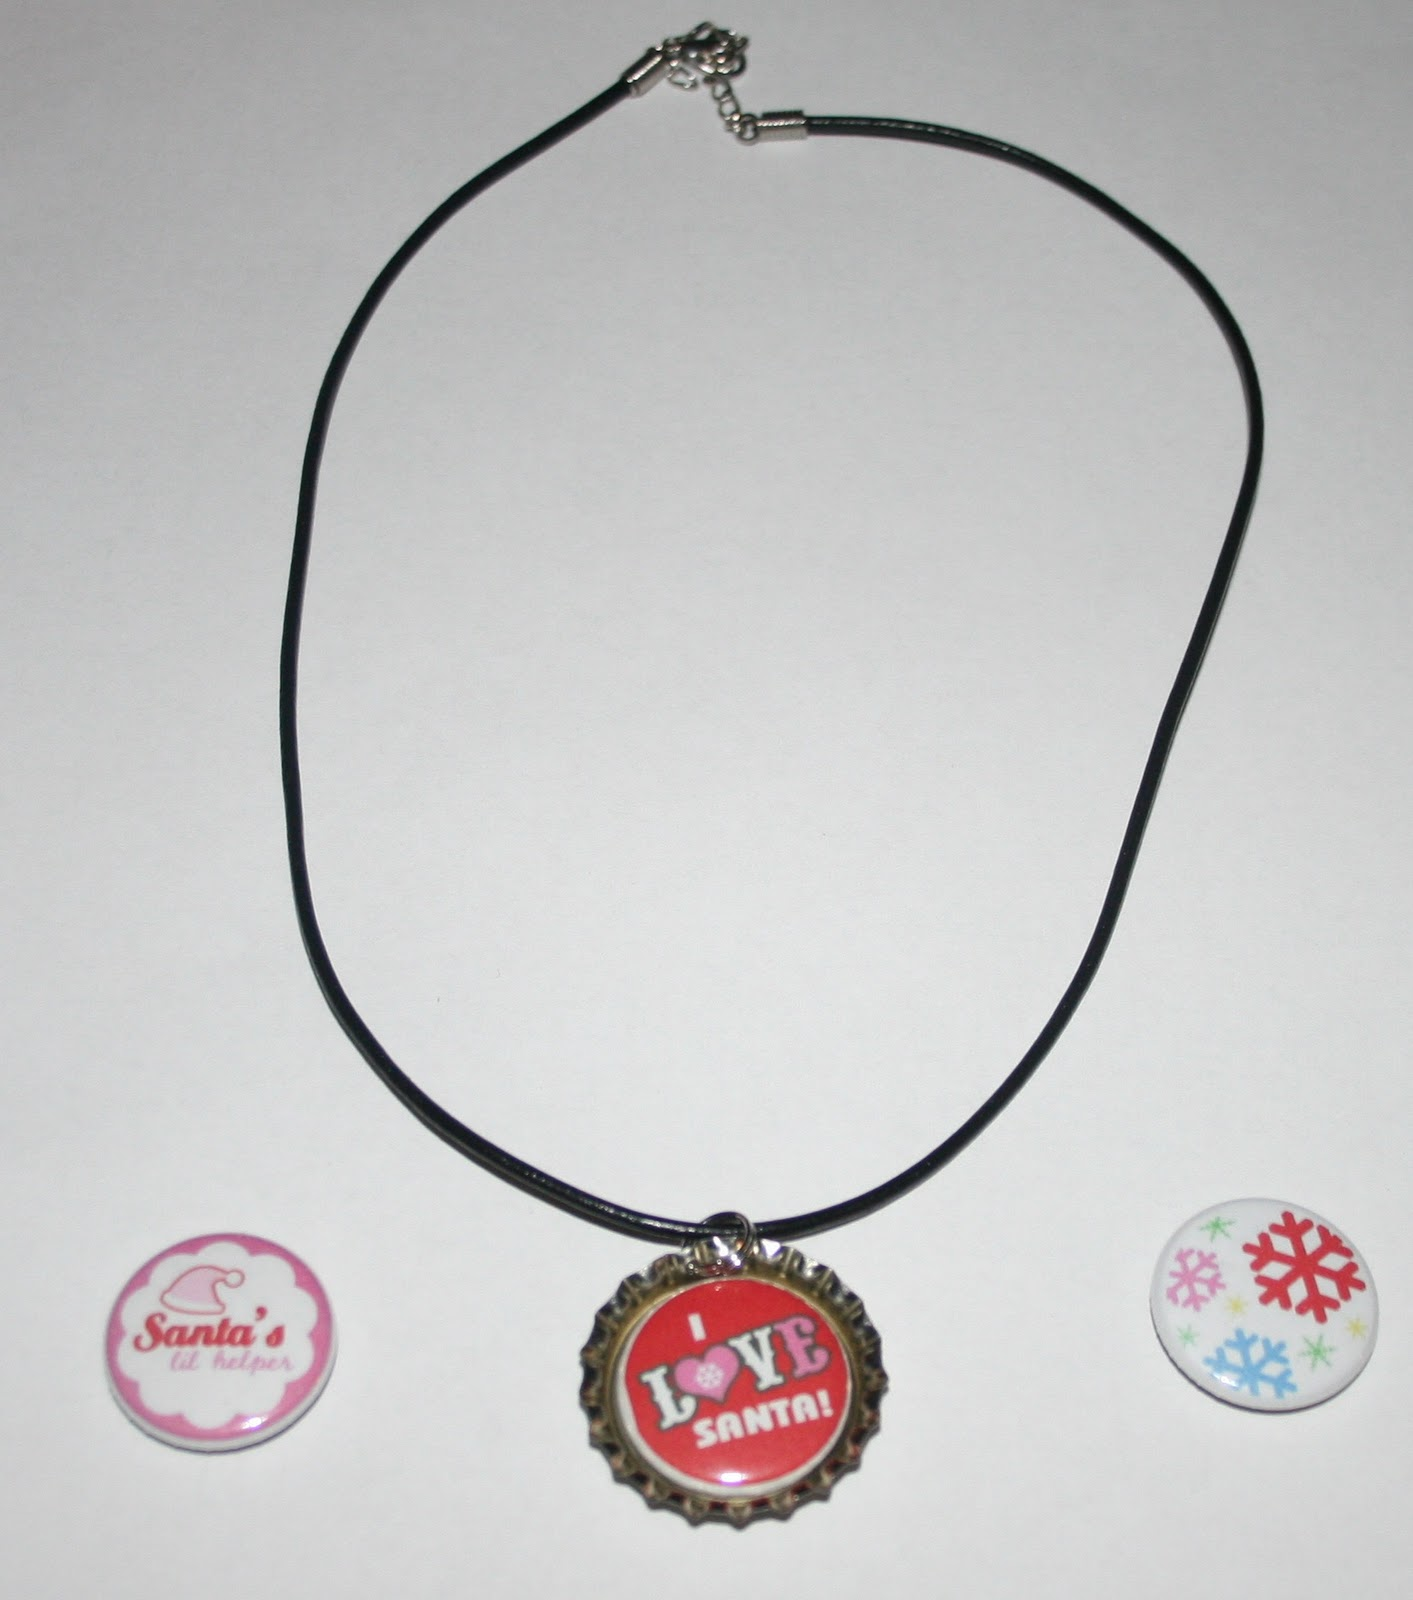 Healthy happy fit interchangeable bracelets necklaces for Jewelry just for fun